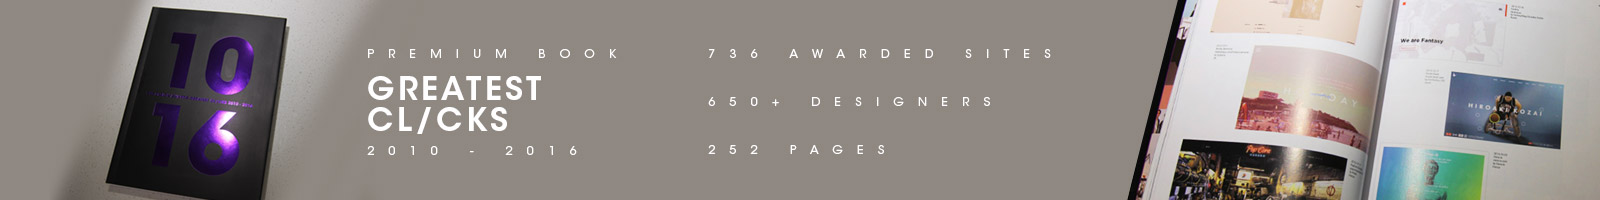 CSSDA GREATEST CL/CKS 2010 - 2016 Book is available now!